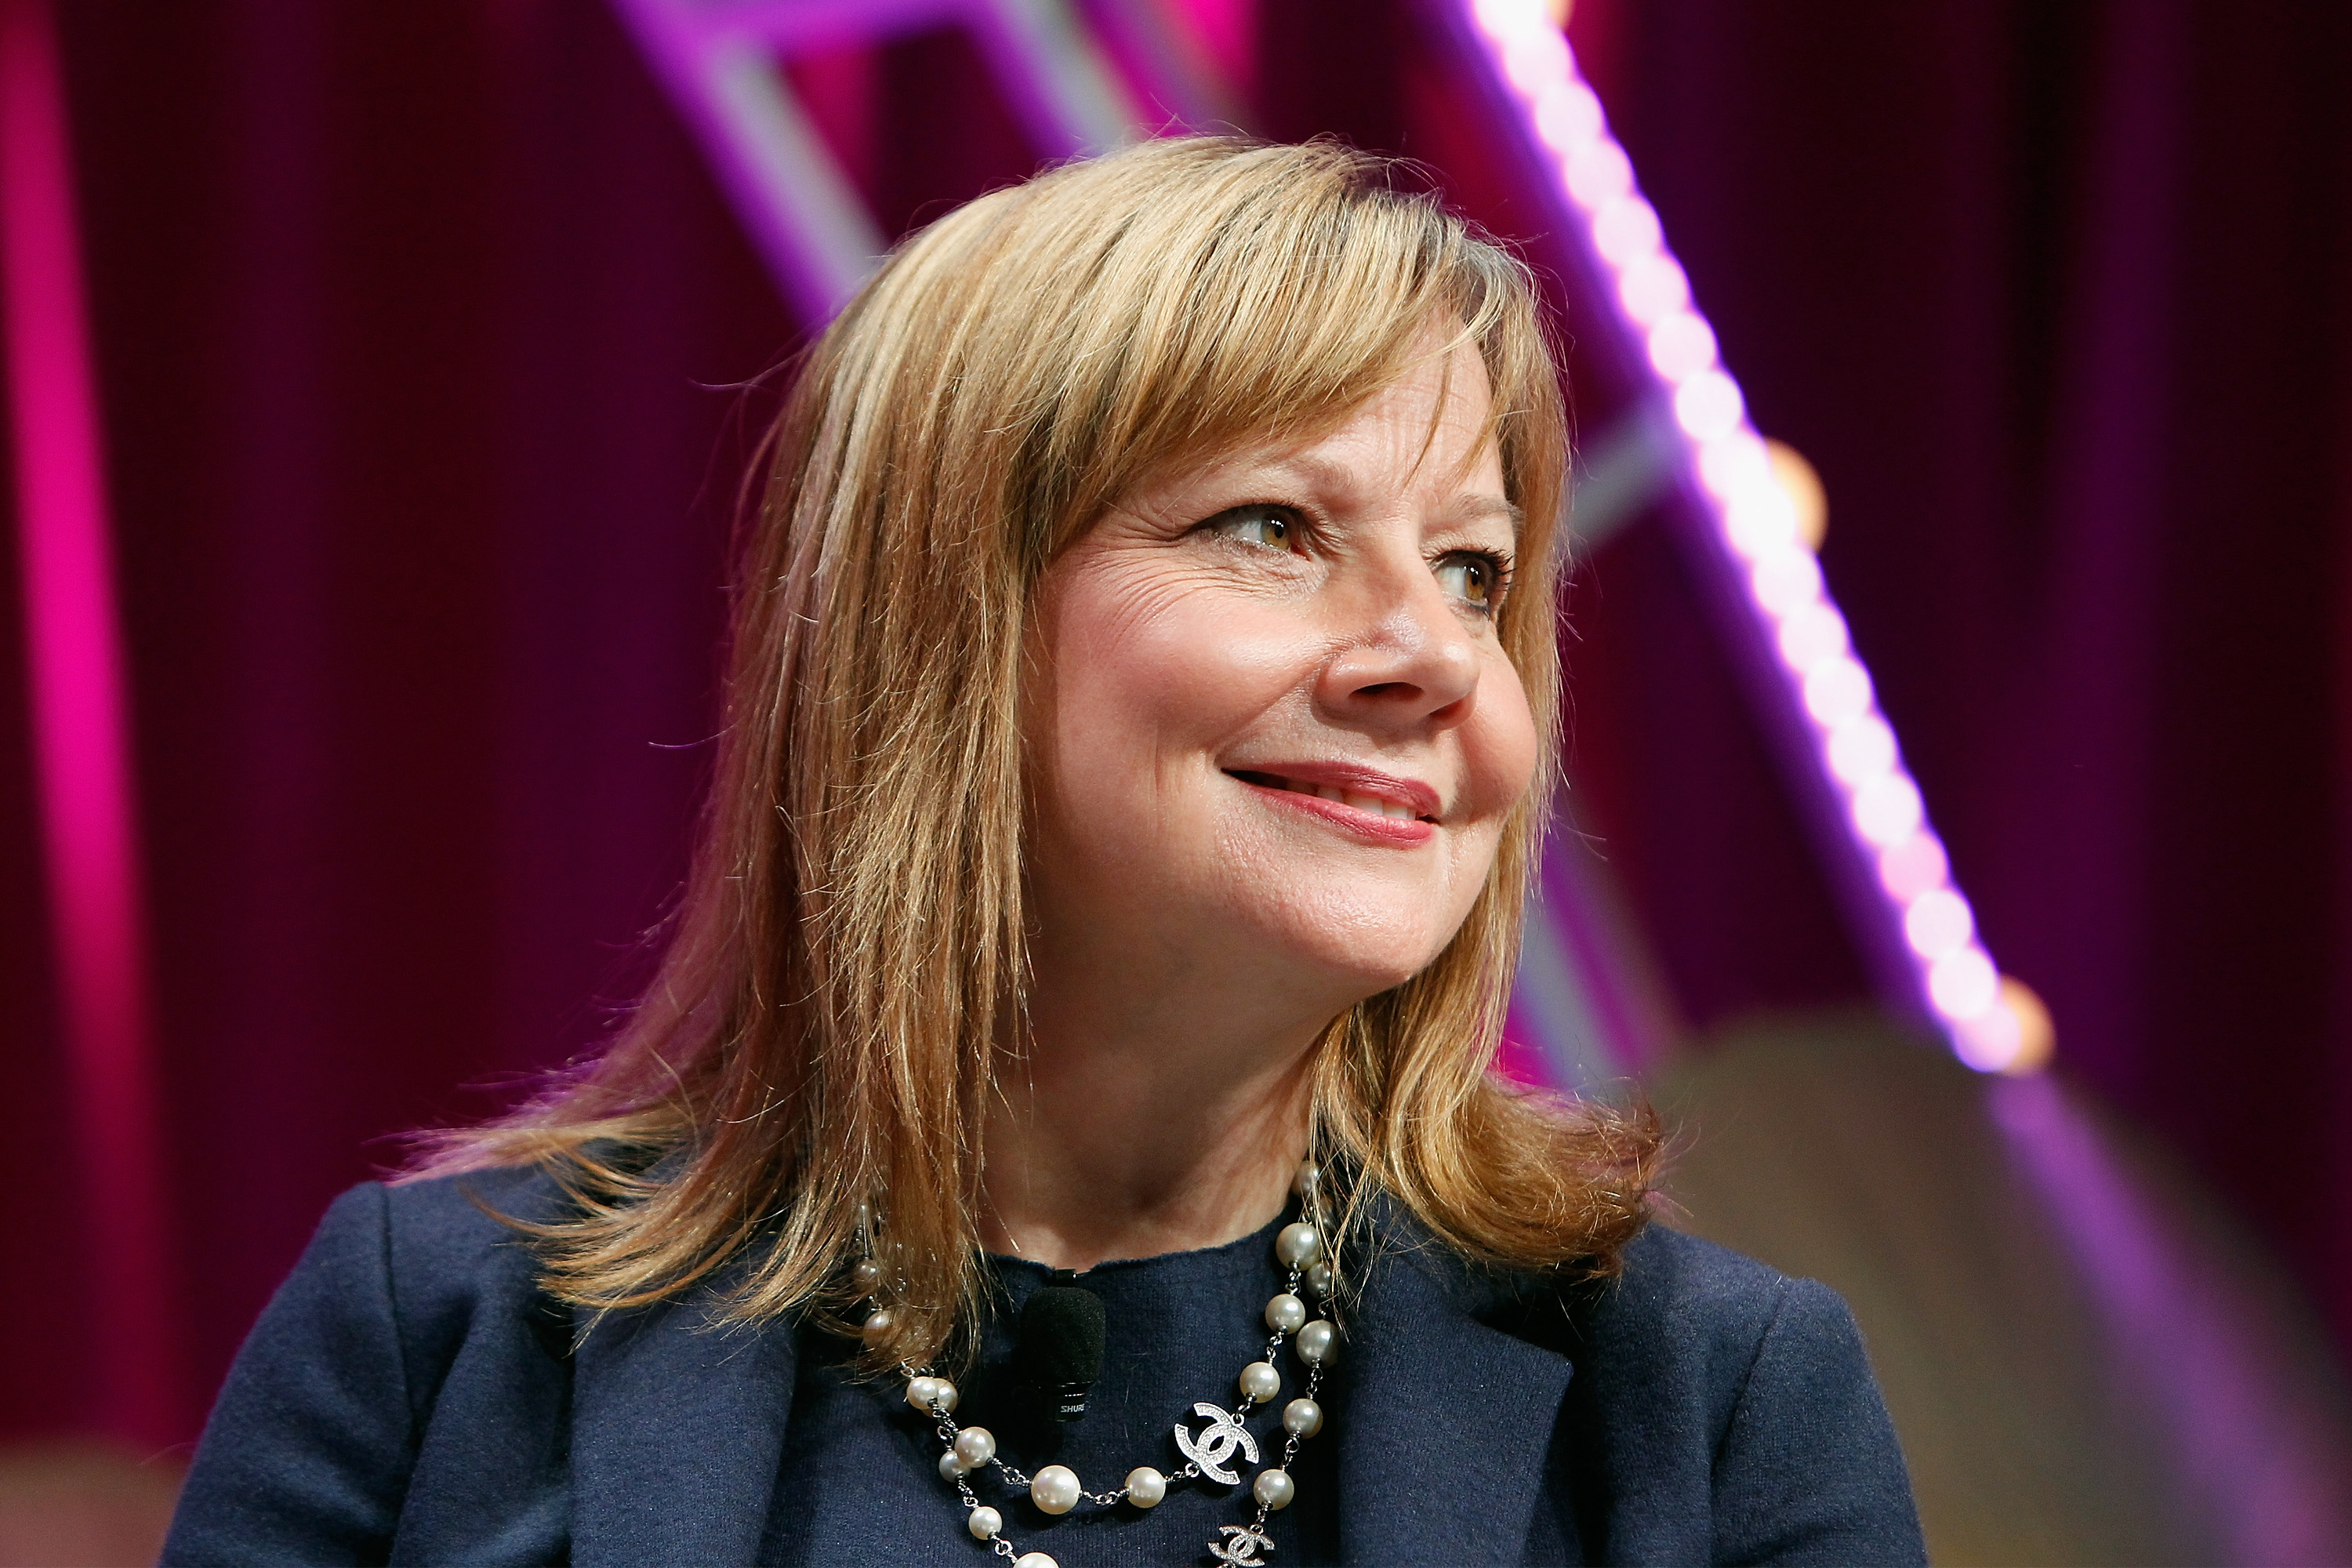 CEO of General Motors Mary Barra speaks onstage during Fortune's Most Powerful Women Summit in Washington, DC, last October.